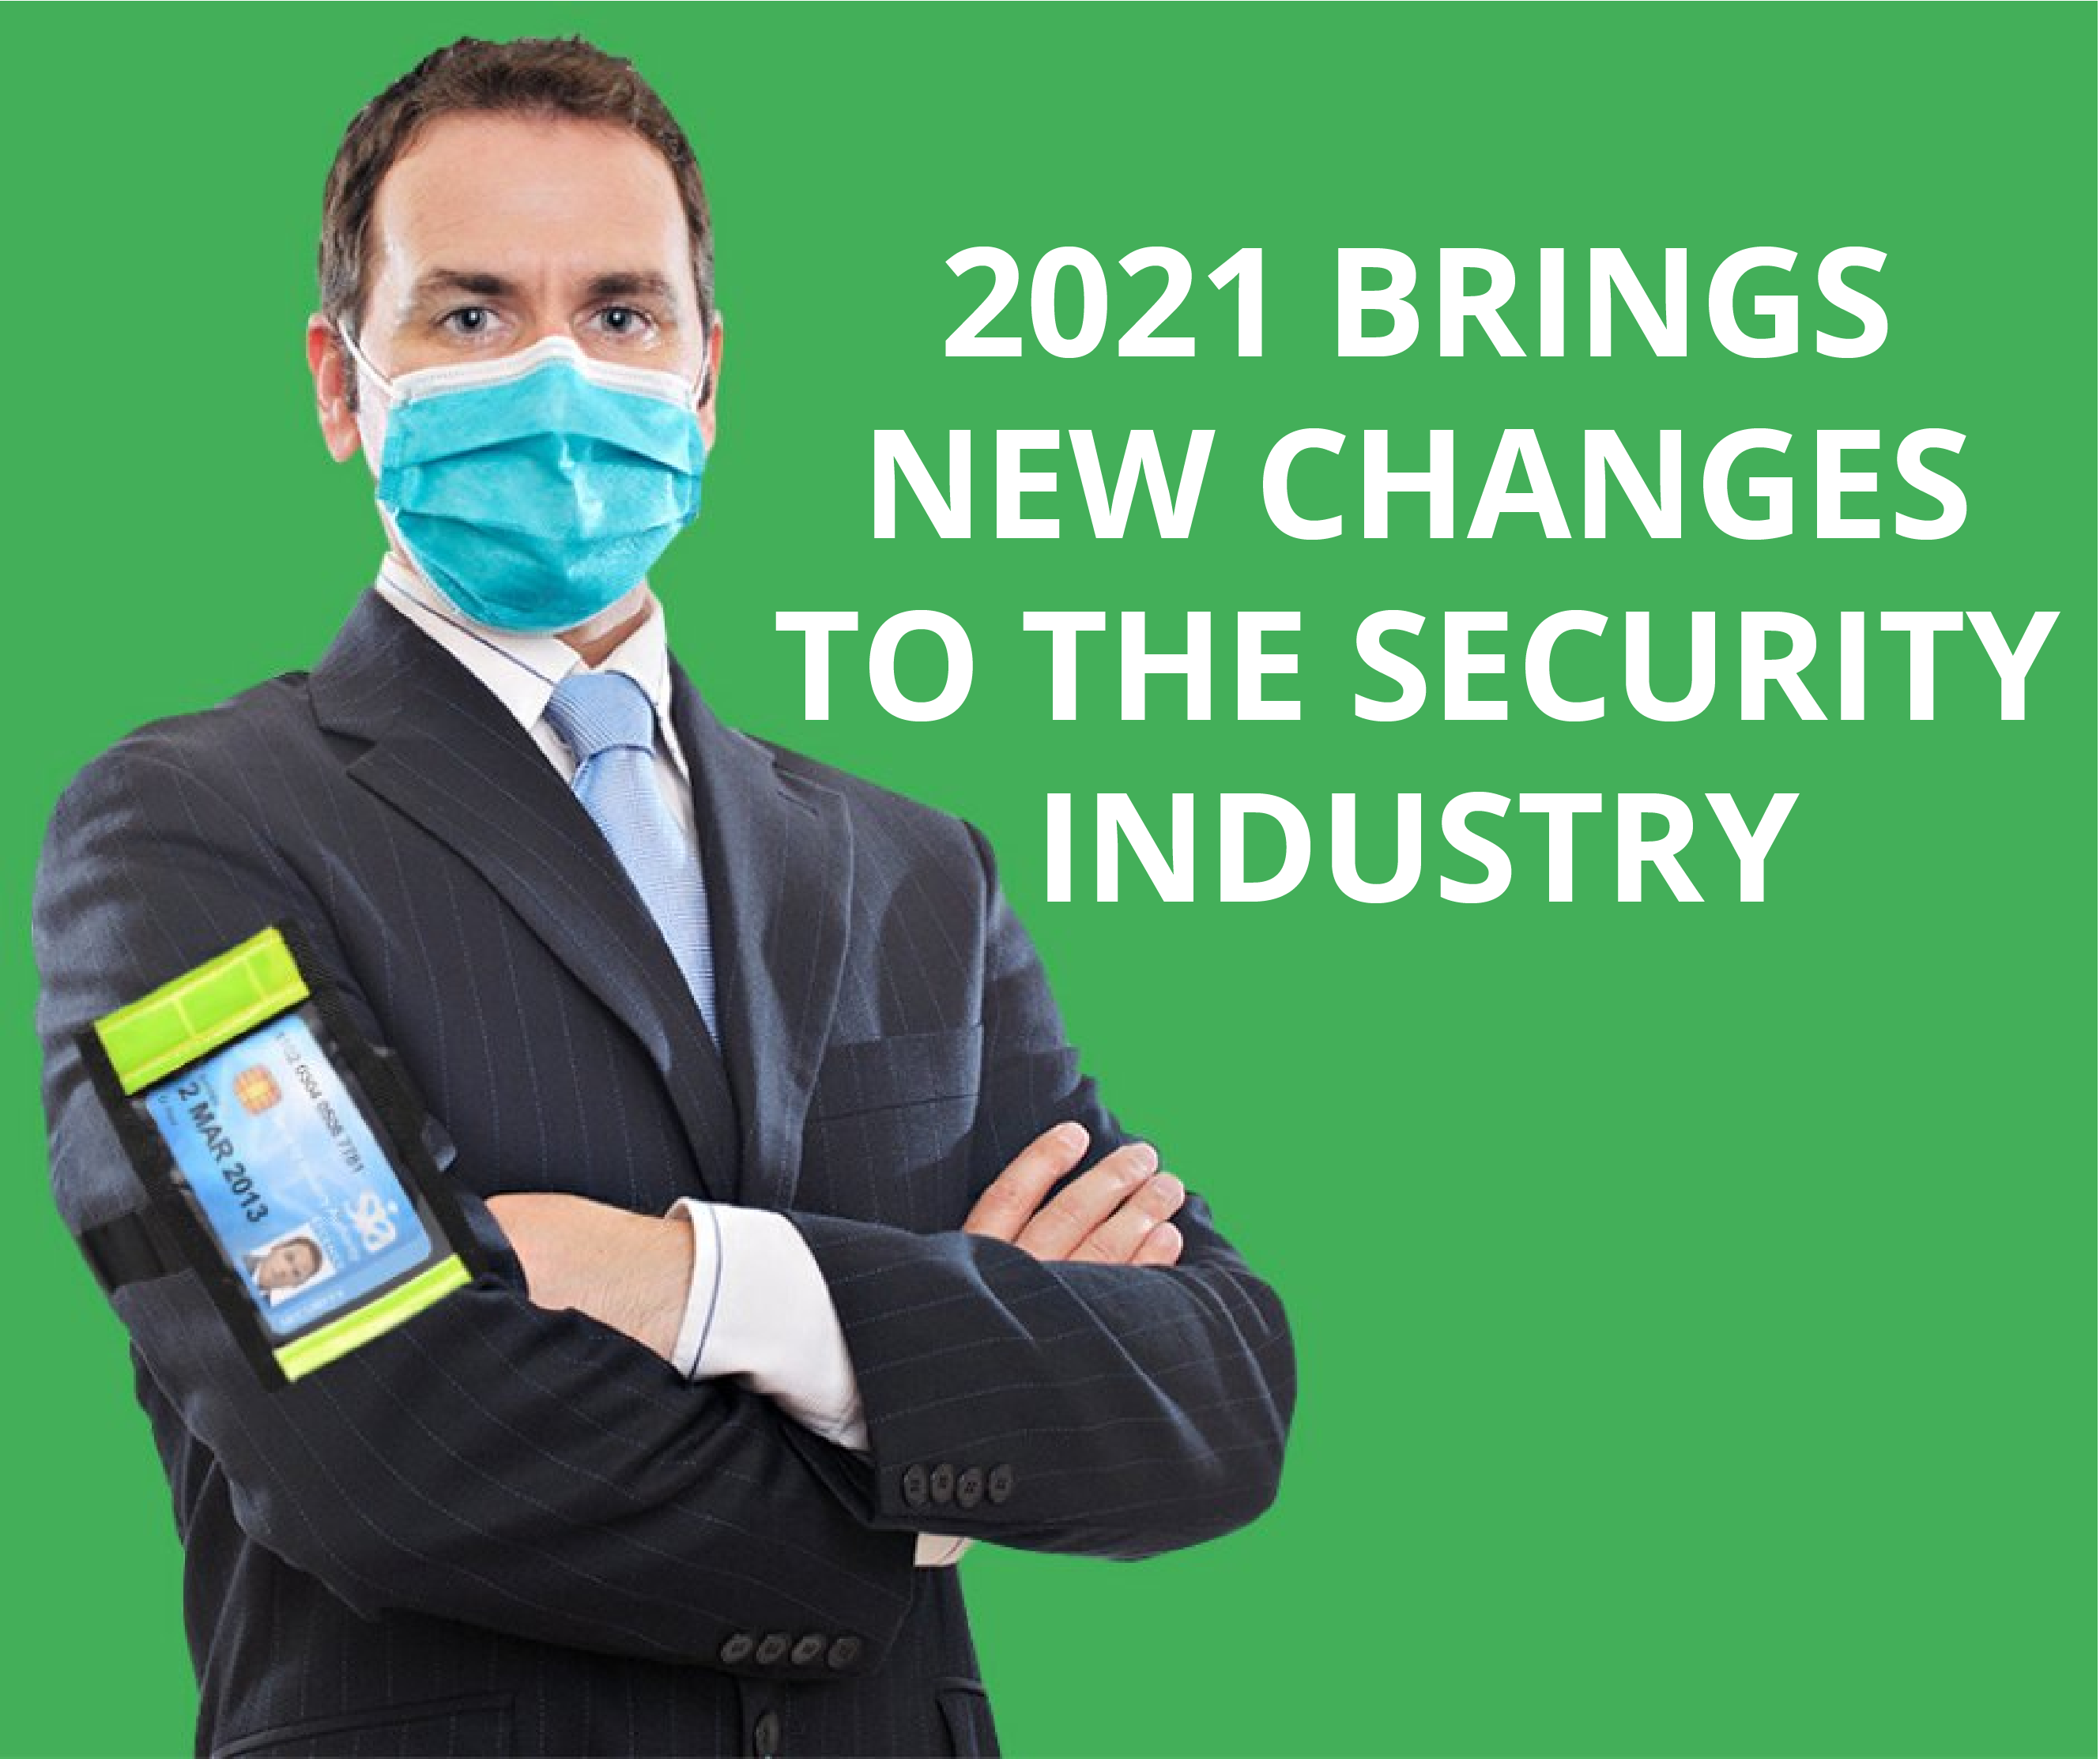 Licenced-Linked Qualifications & Top-up Training shaking up the security industry in 2021